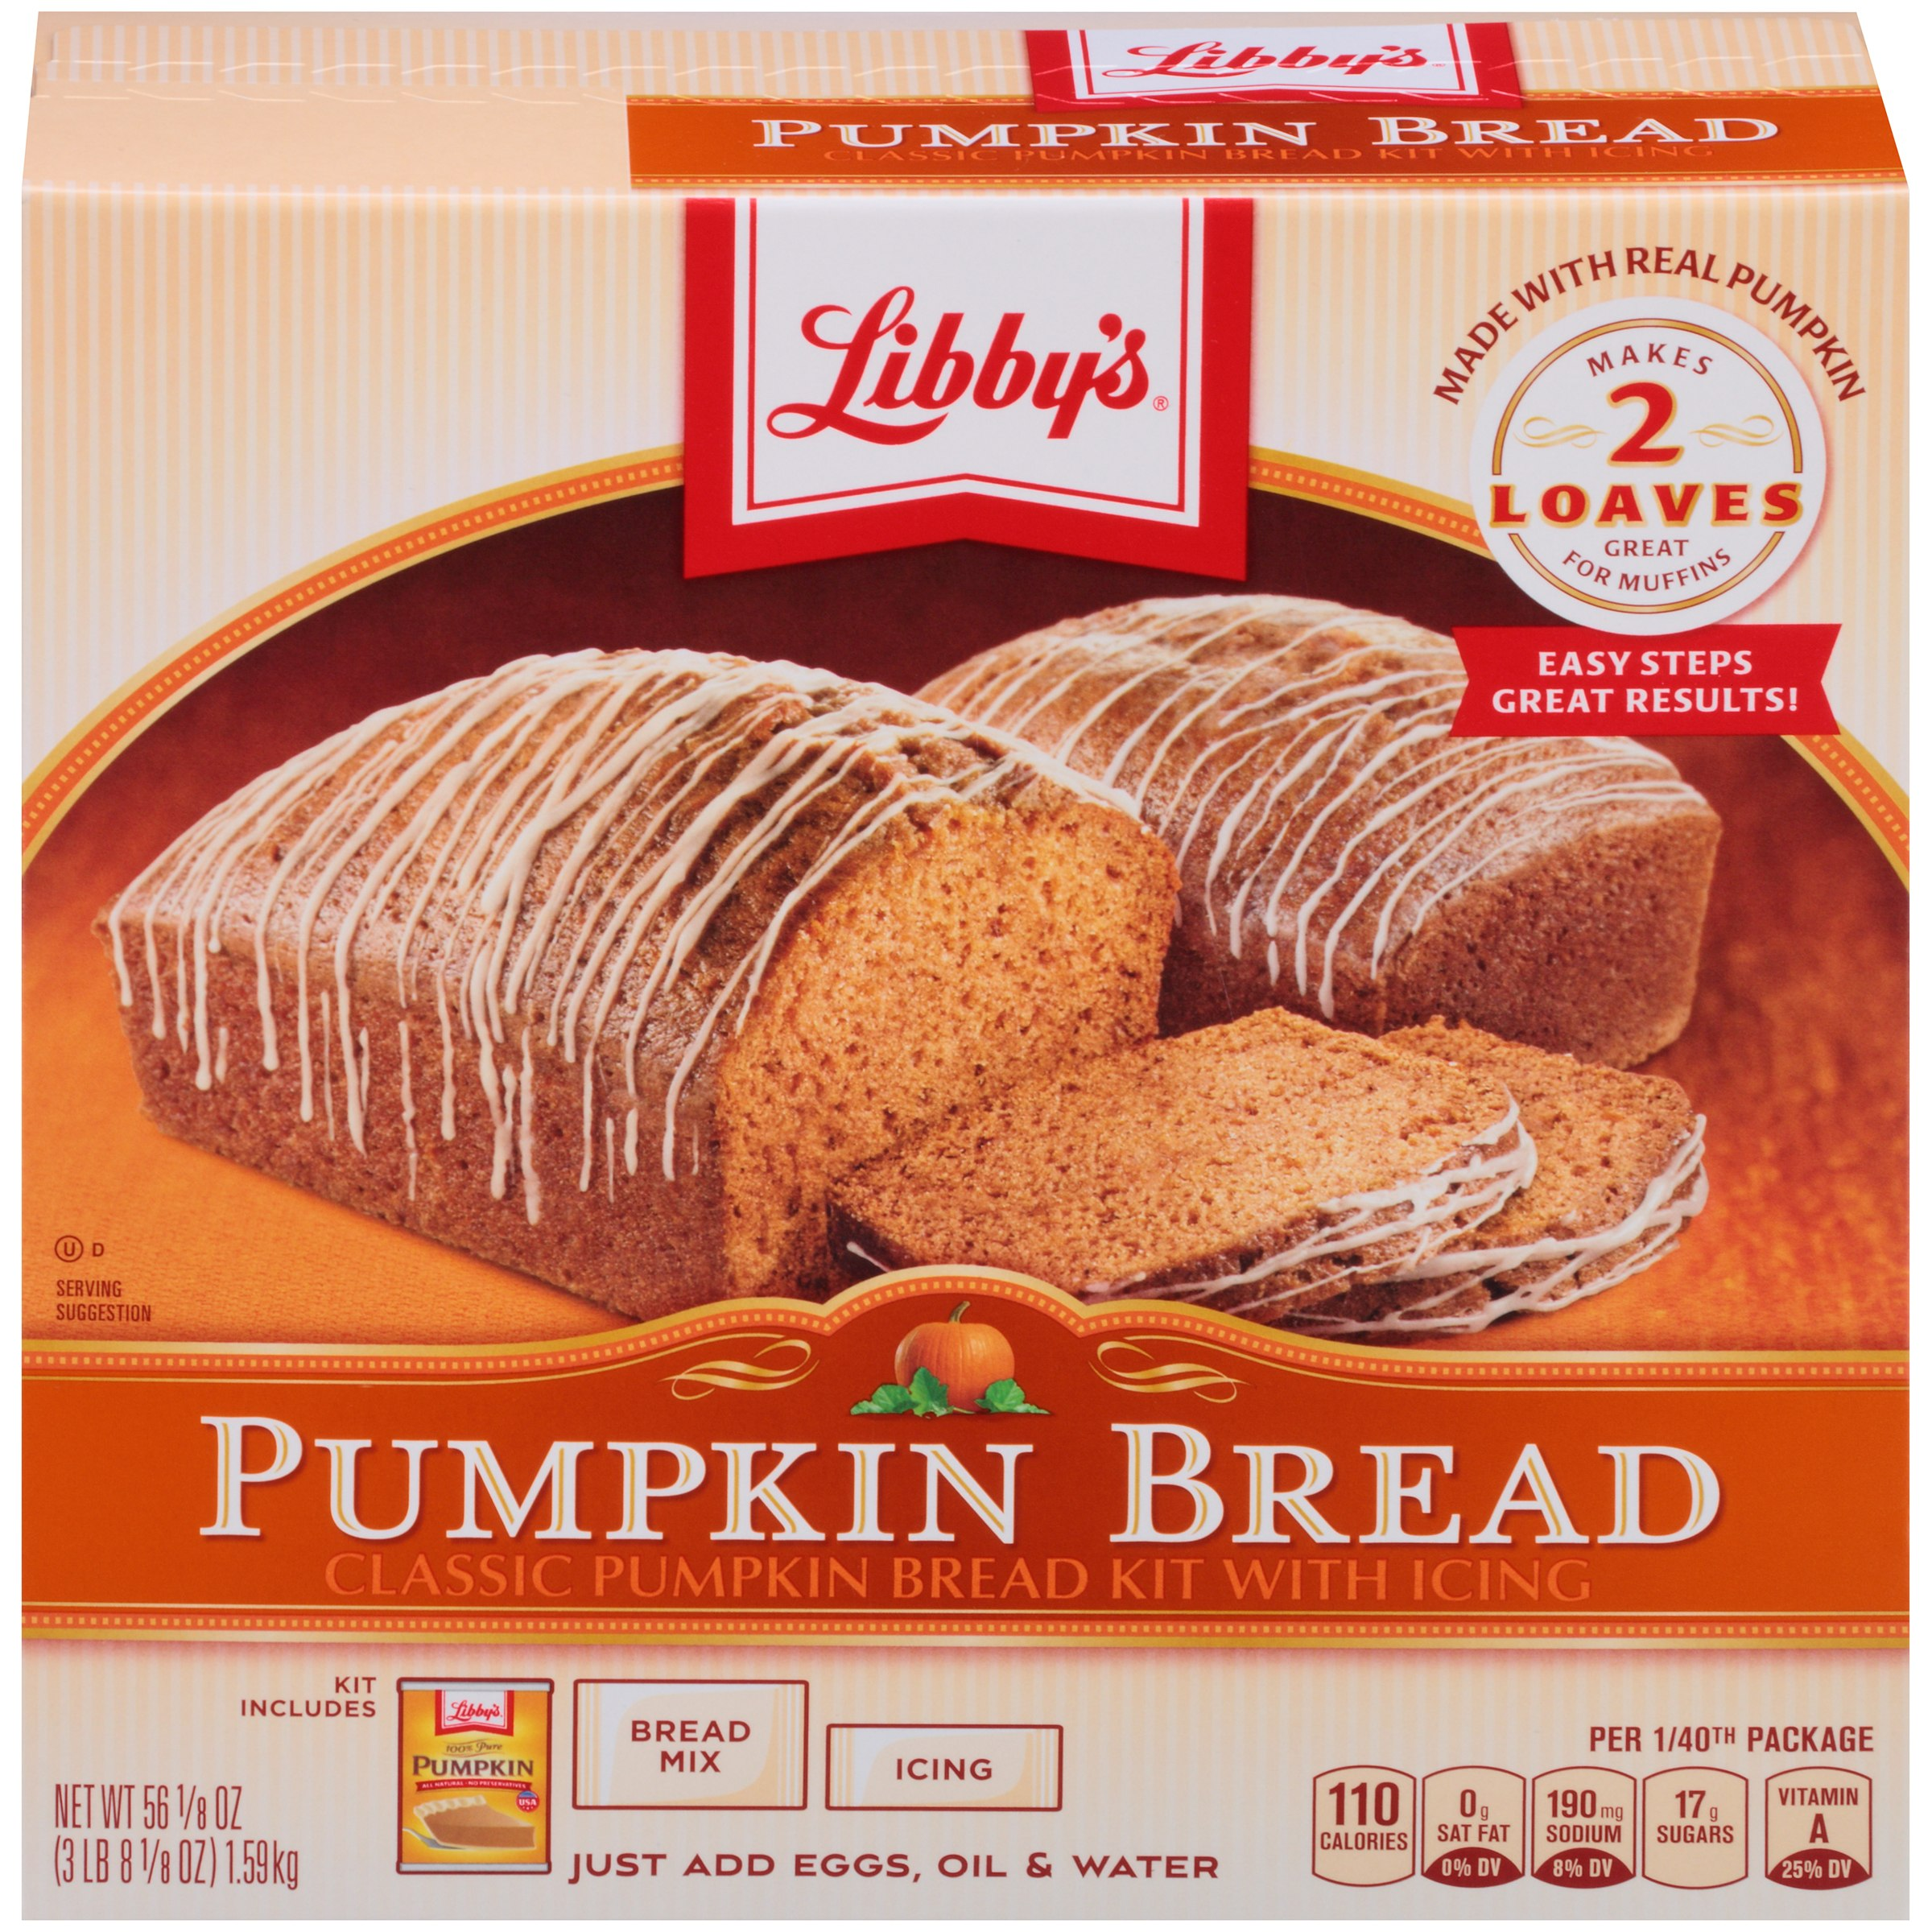 LIBBY'S Classic Pumpkin Bread Kit with Icing 56.1 oz. Box